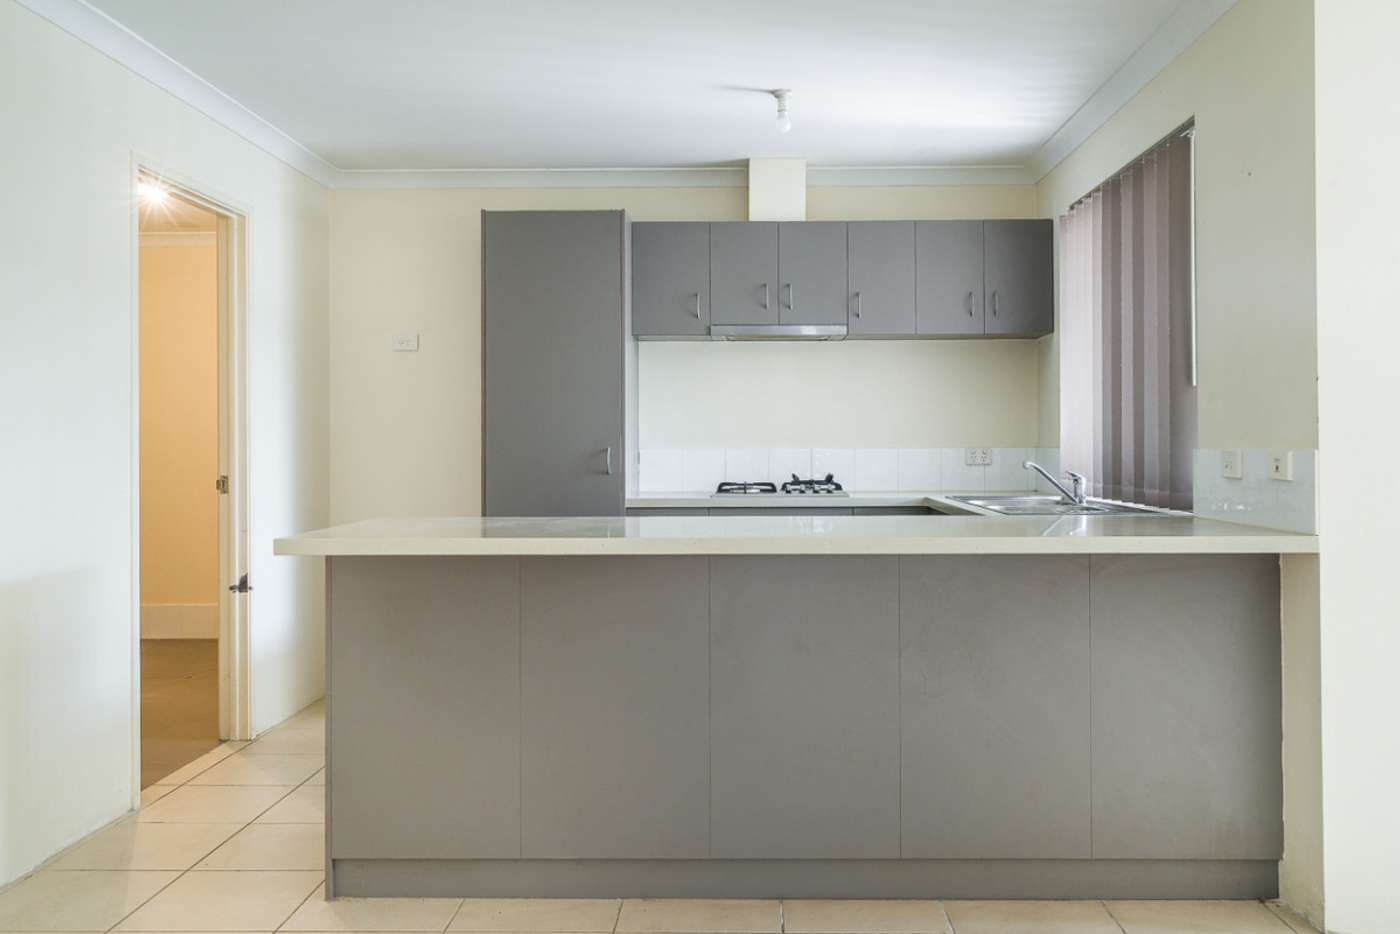 Seventh view of Homely house listing, 3/275 Boardman Road, Canning Vale WA 6155